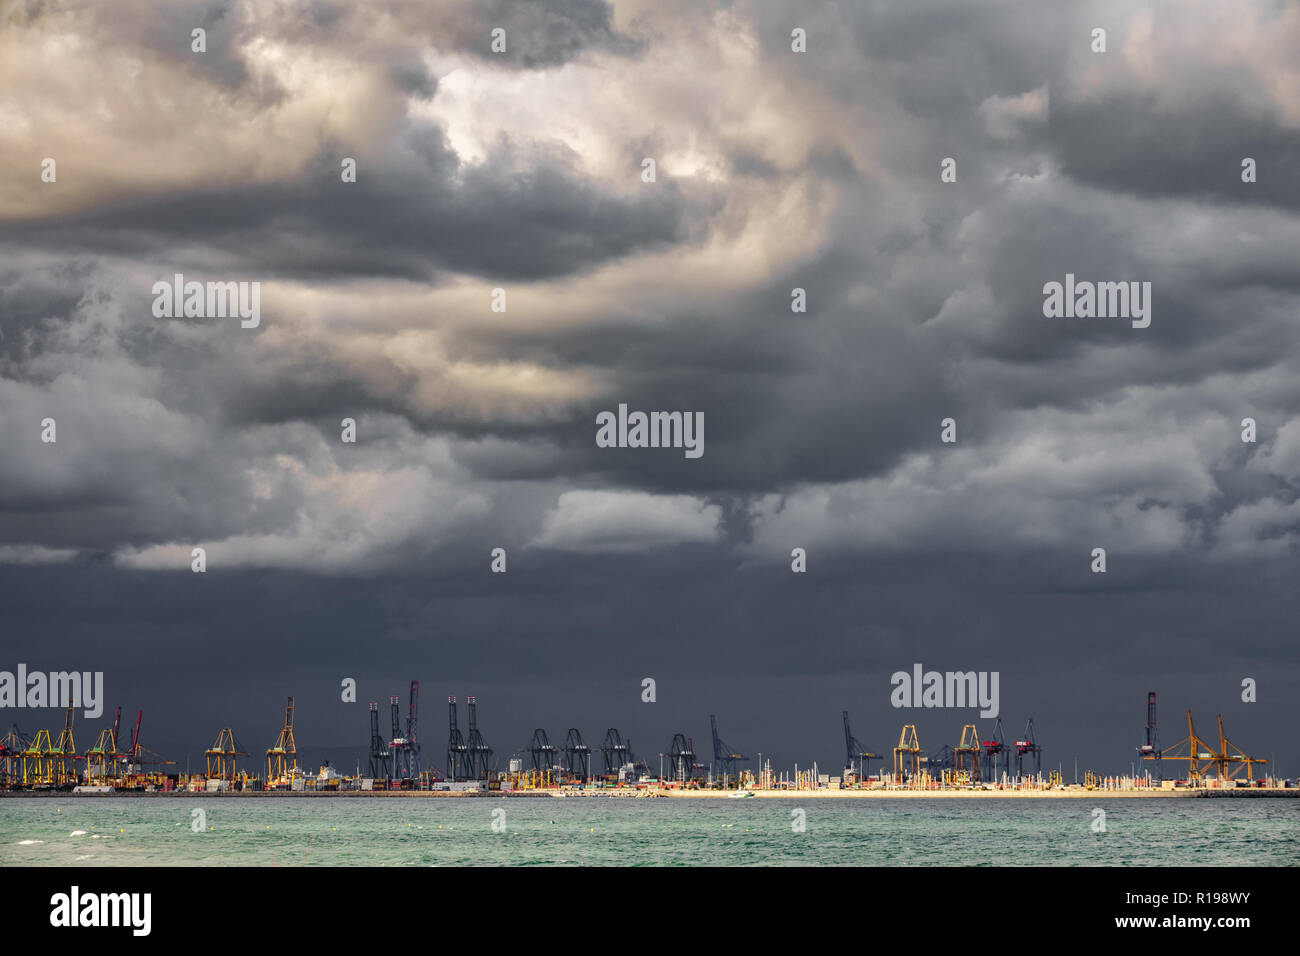 Very dark clouds over commercial dock - Stock Image